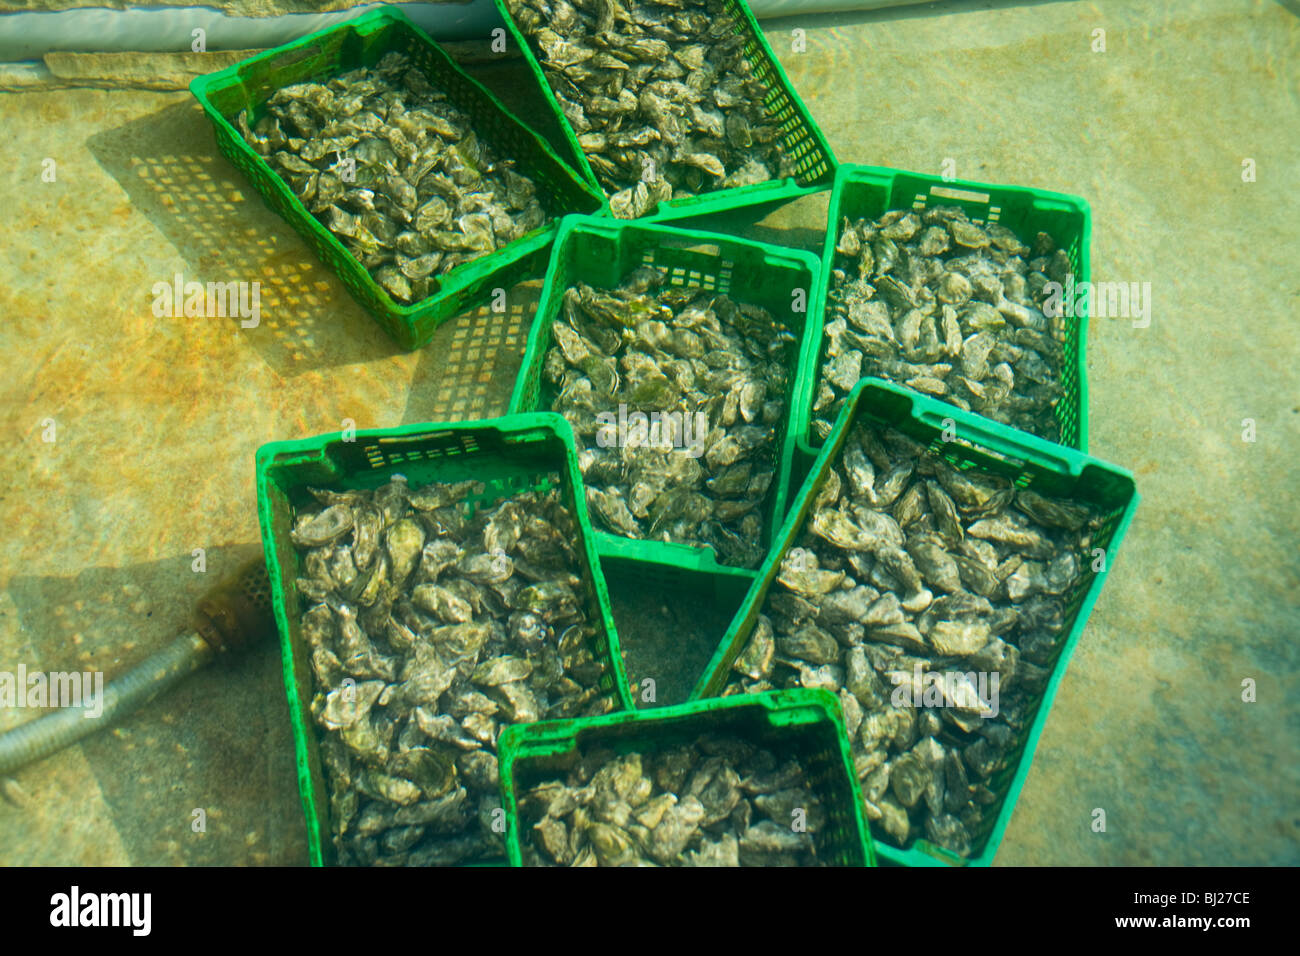 Oysters in cases being kept under fresh sea water to be served to customers - Stock Image